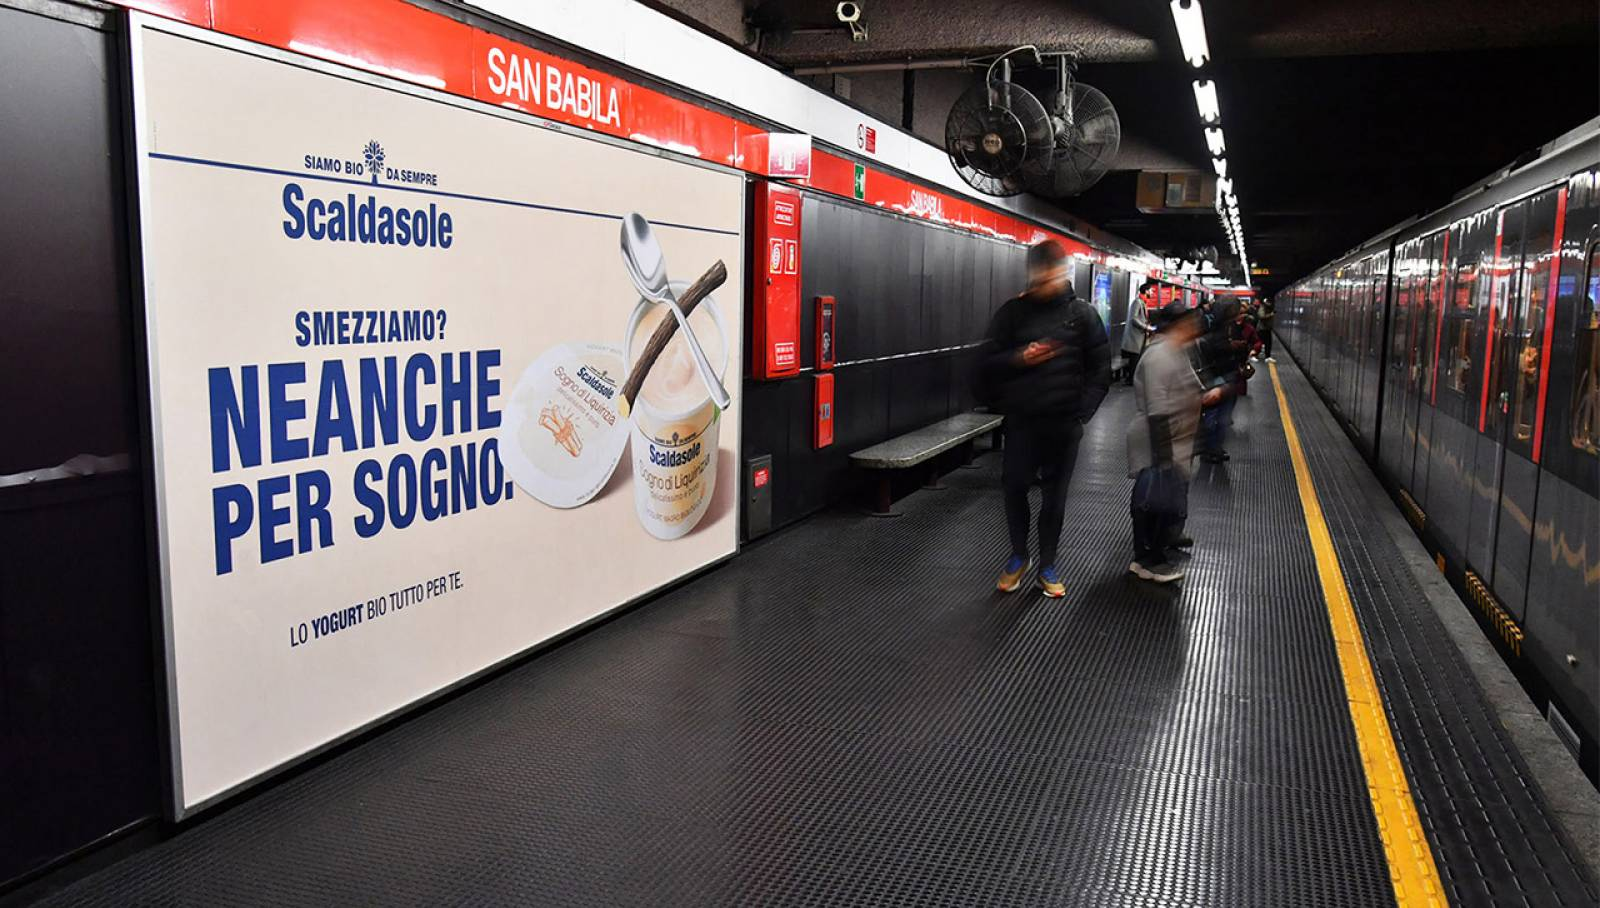 Out of Home advertising IGPDecaux in Milan Landscape Coverage network for Scaldasole